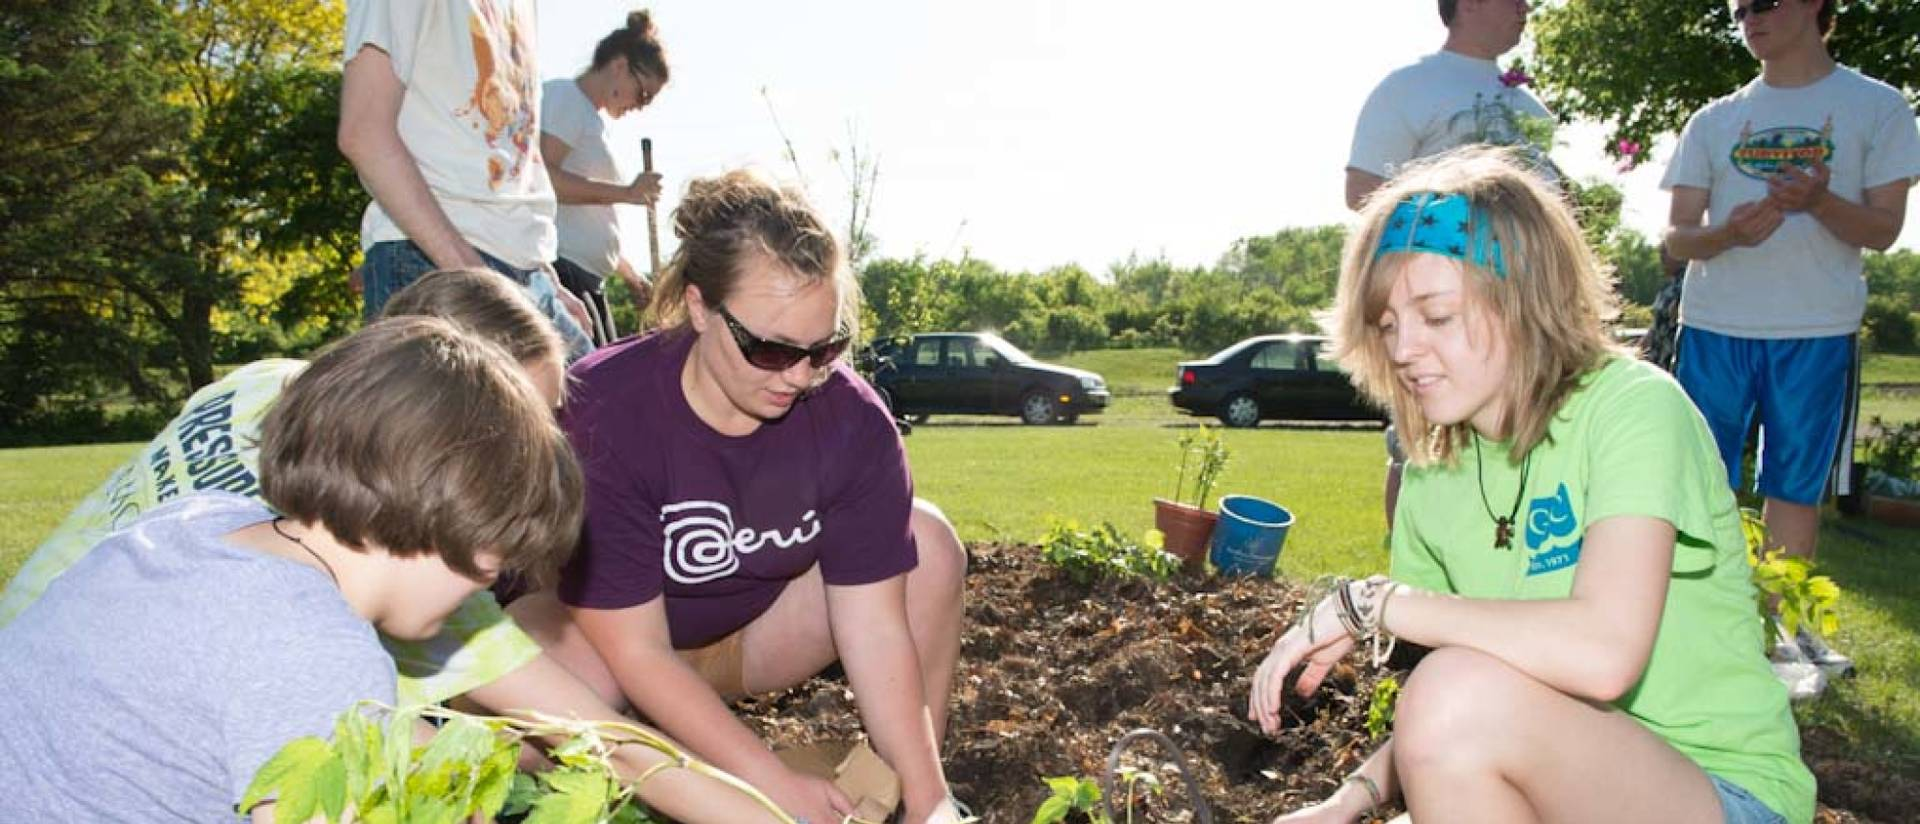 Students volunteer to plant in the community garden near Phoenix park